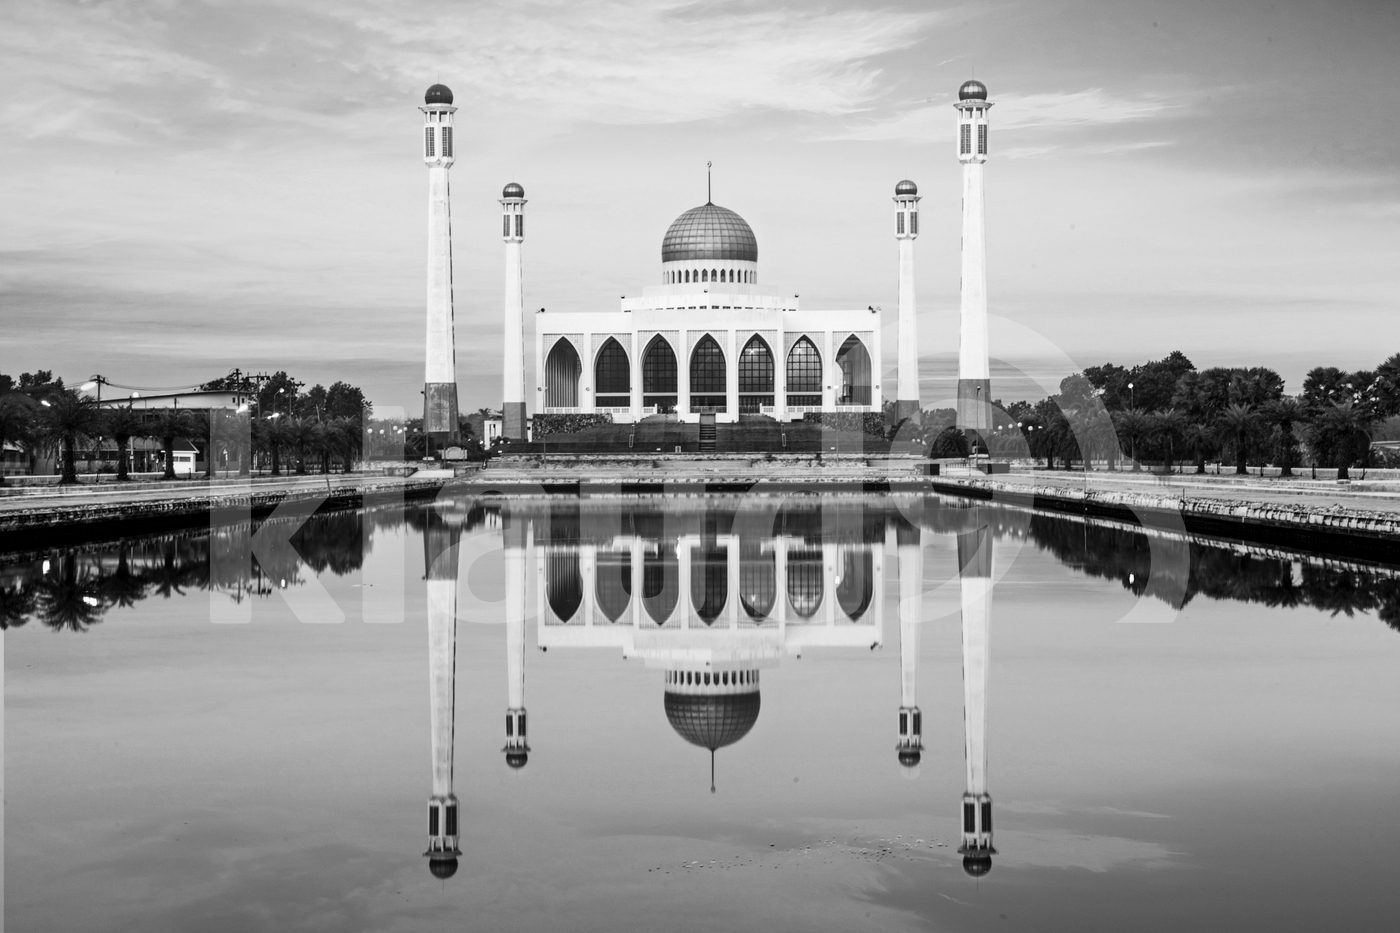 Hatyai Central Mosque in black and white